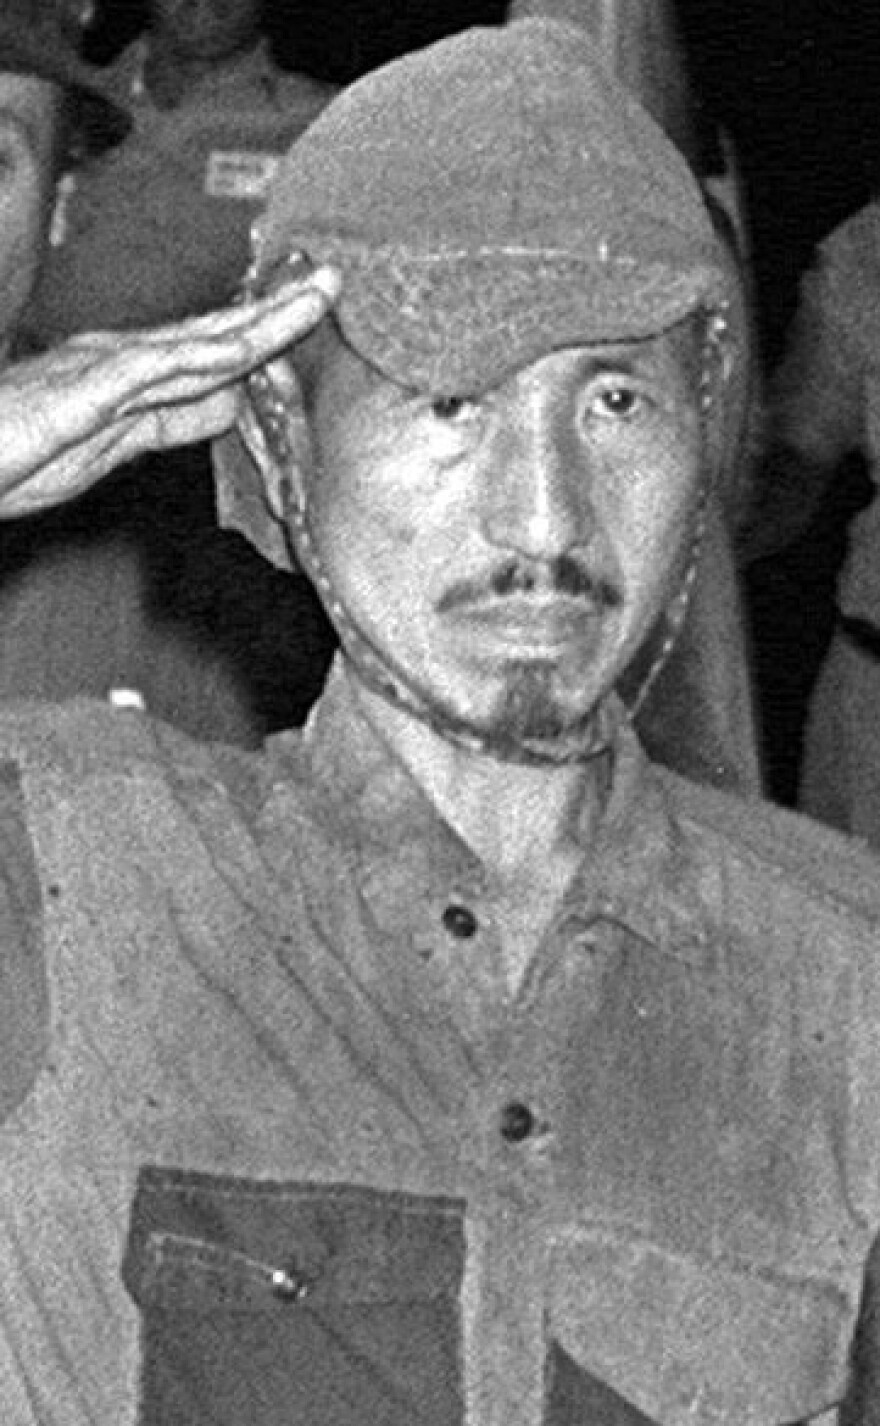 Hiroo Onoda, who wouldn't surrender for nearly three decades and continued to battle with villagers in the Philippines, in March 1974 after he was convinced to give up.